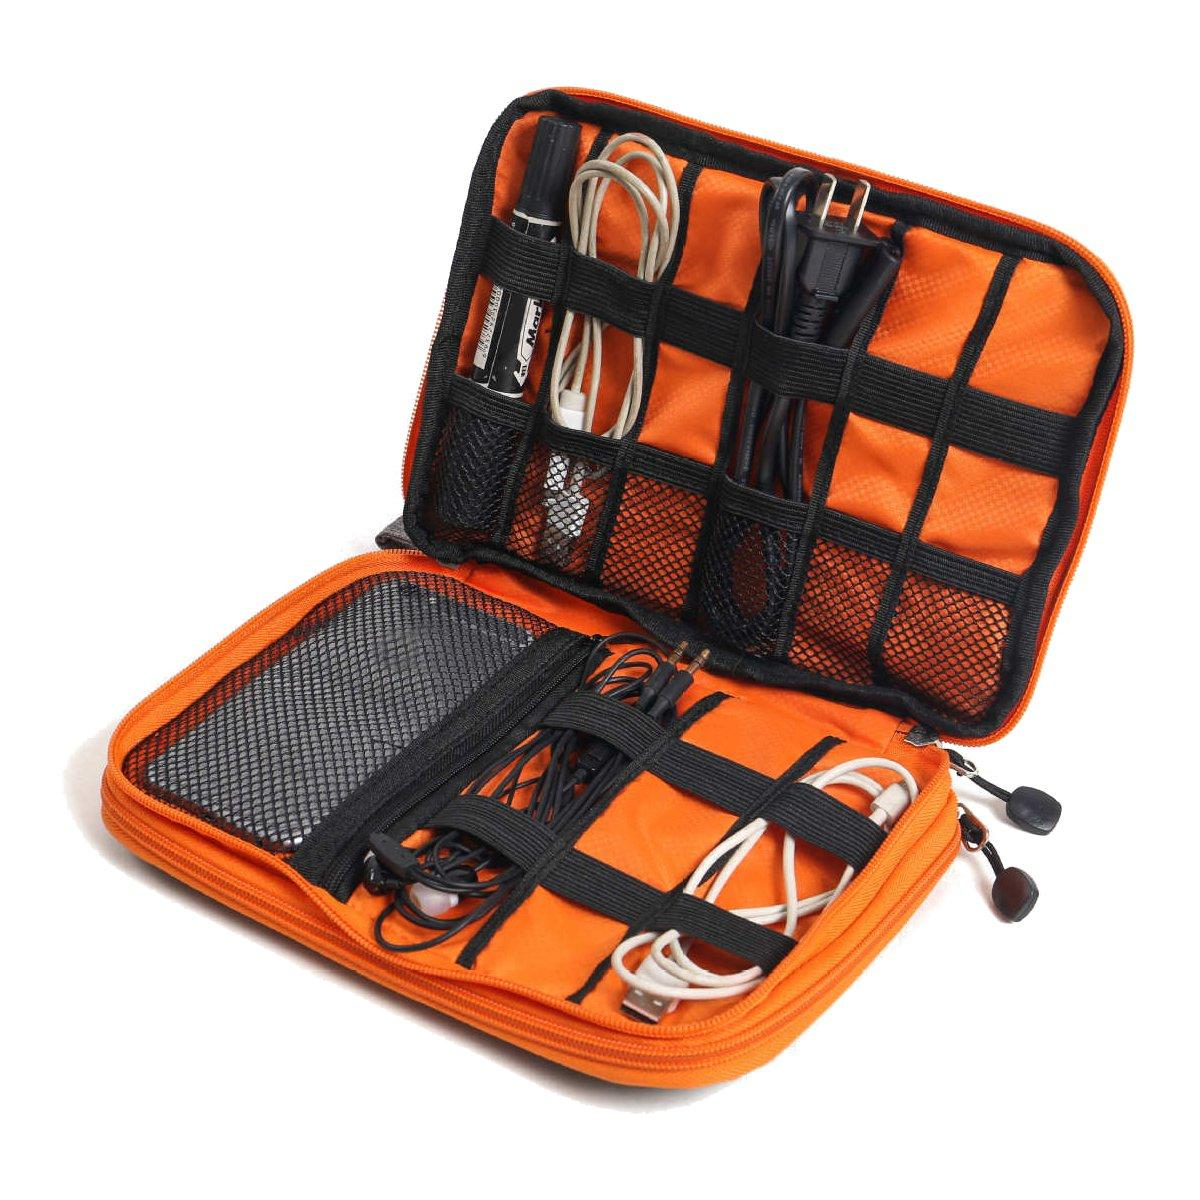 Portable Data Cable Storage Bag Double Layer USB Gadget Organizer Digital Pouch Outdoor Travel